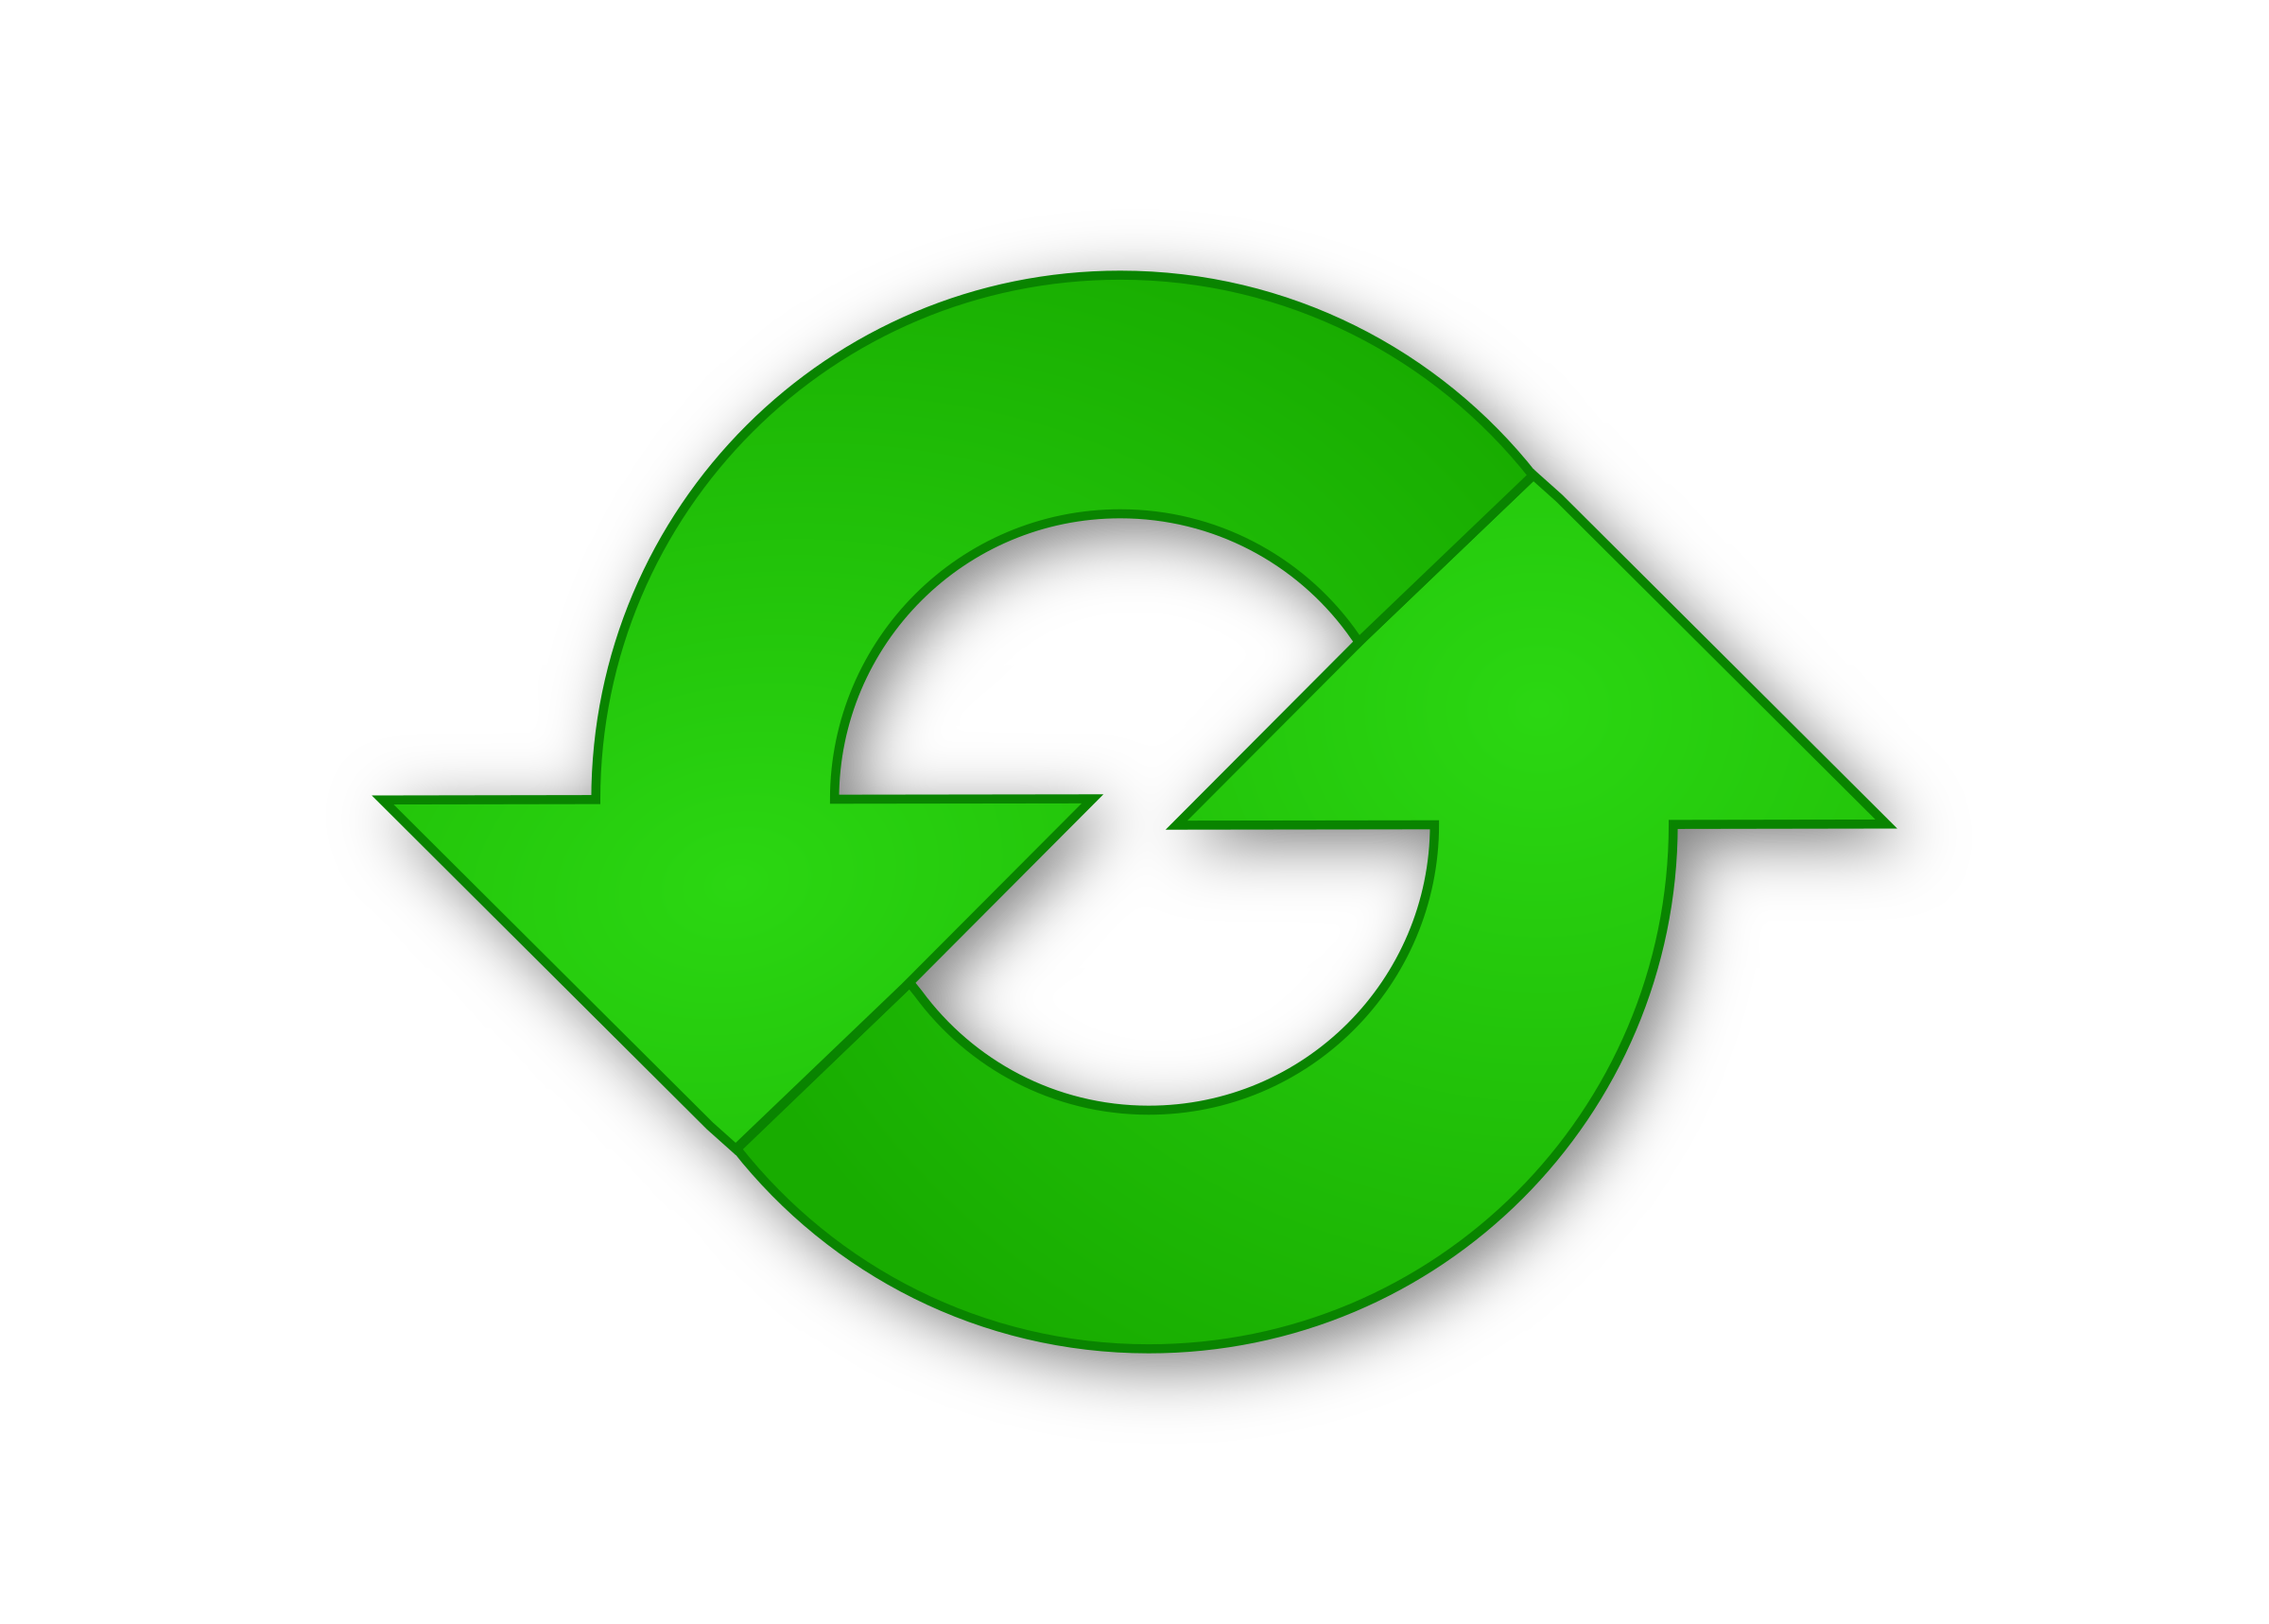 Green Refresh Icon Png image #10827